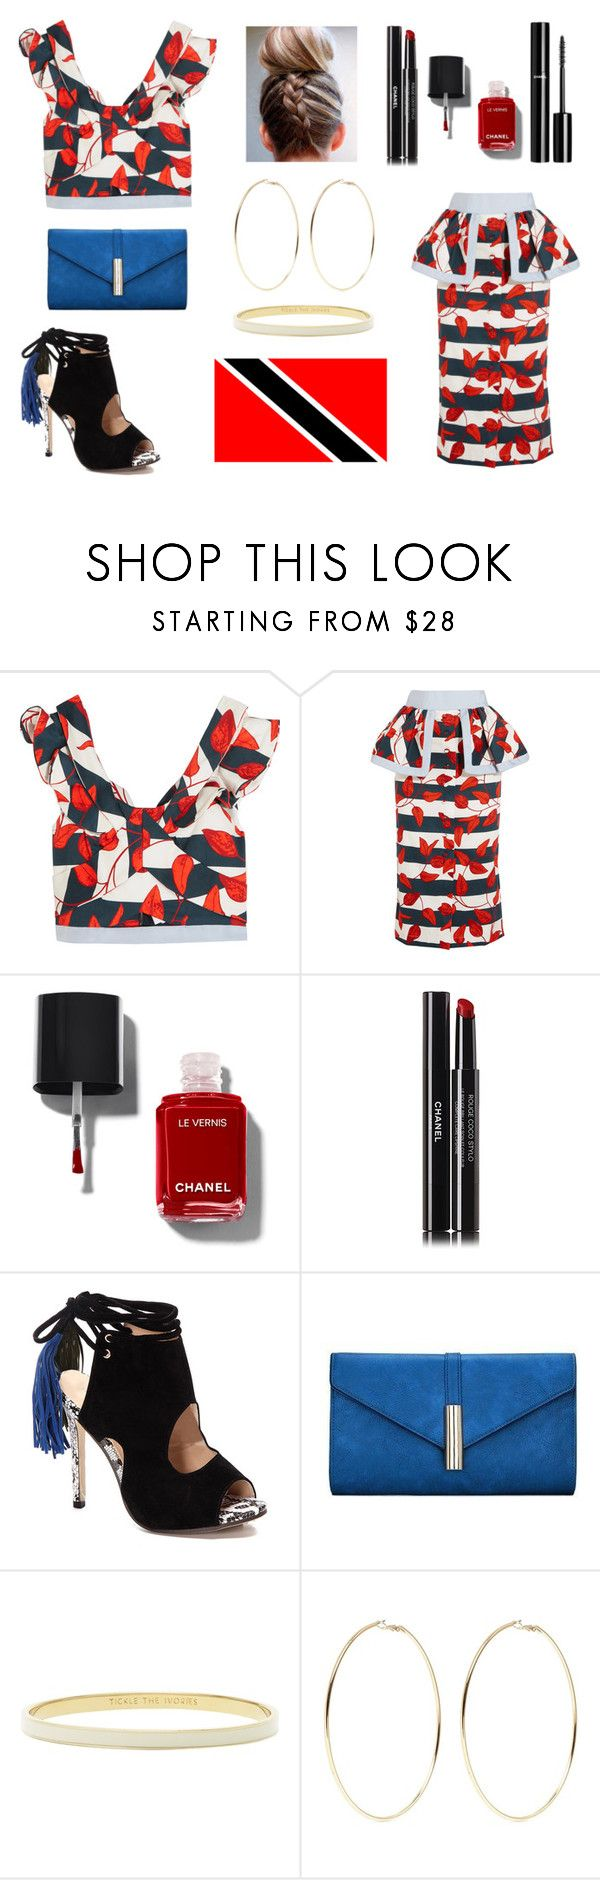 """""""Trinidad and Tobago Travel - Contest Entry 3"""" by lovelisa1997 ❤ liked on Polyvore featuring Johanna Ortiz, Chanel, Kate Spade and Kenneth Jay Lane"""